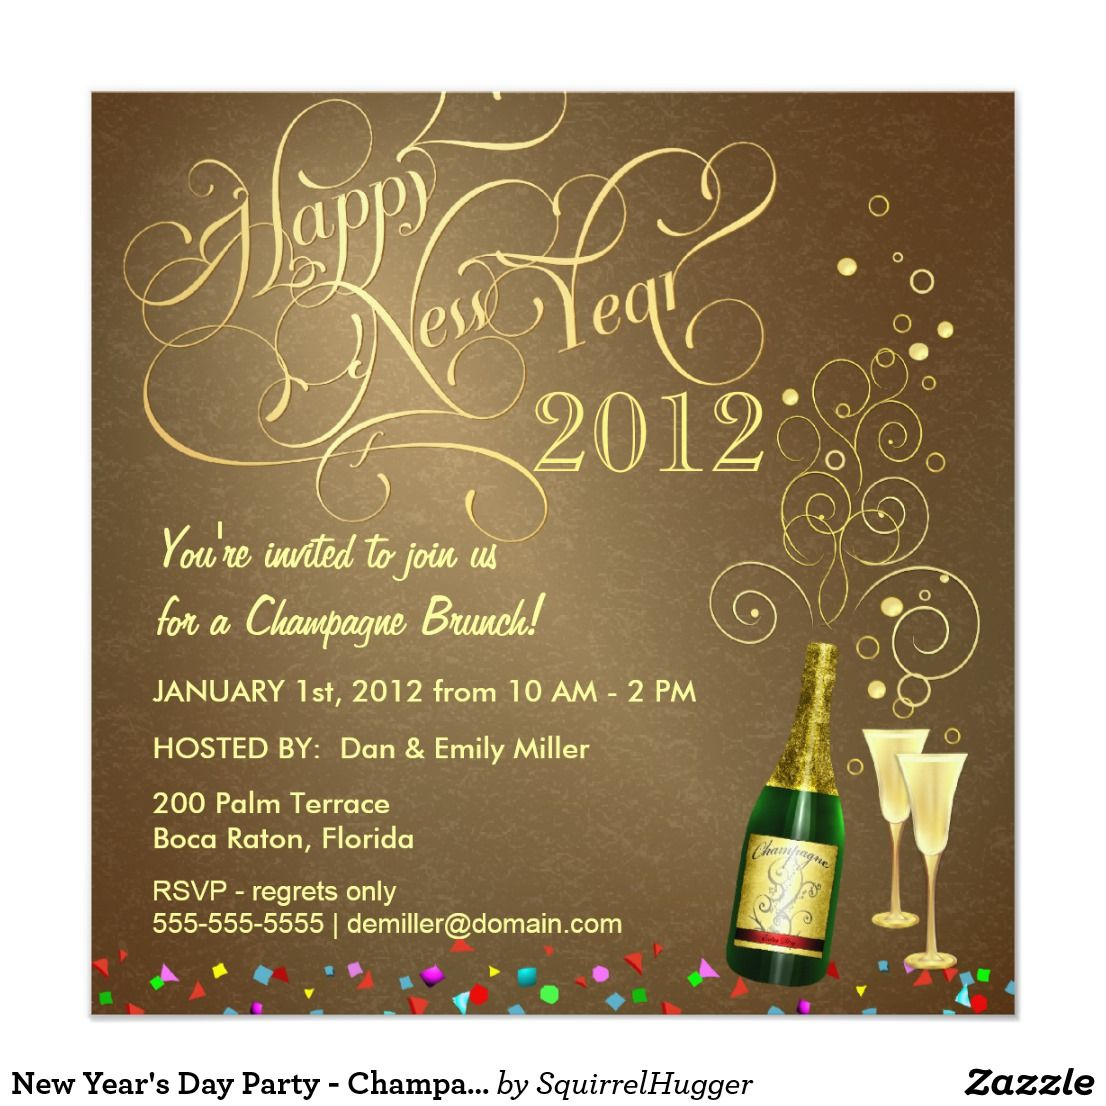 New Year's Day Party Champagne Brunch Invitation